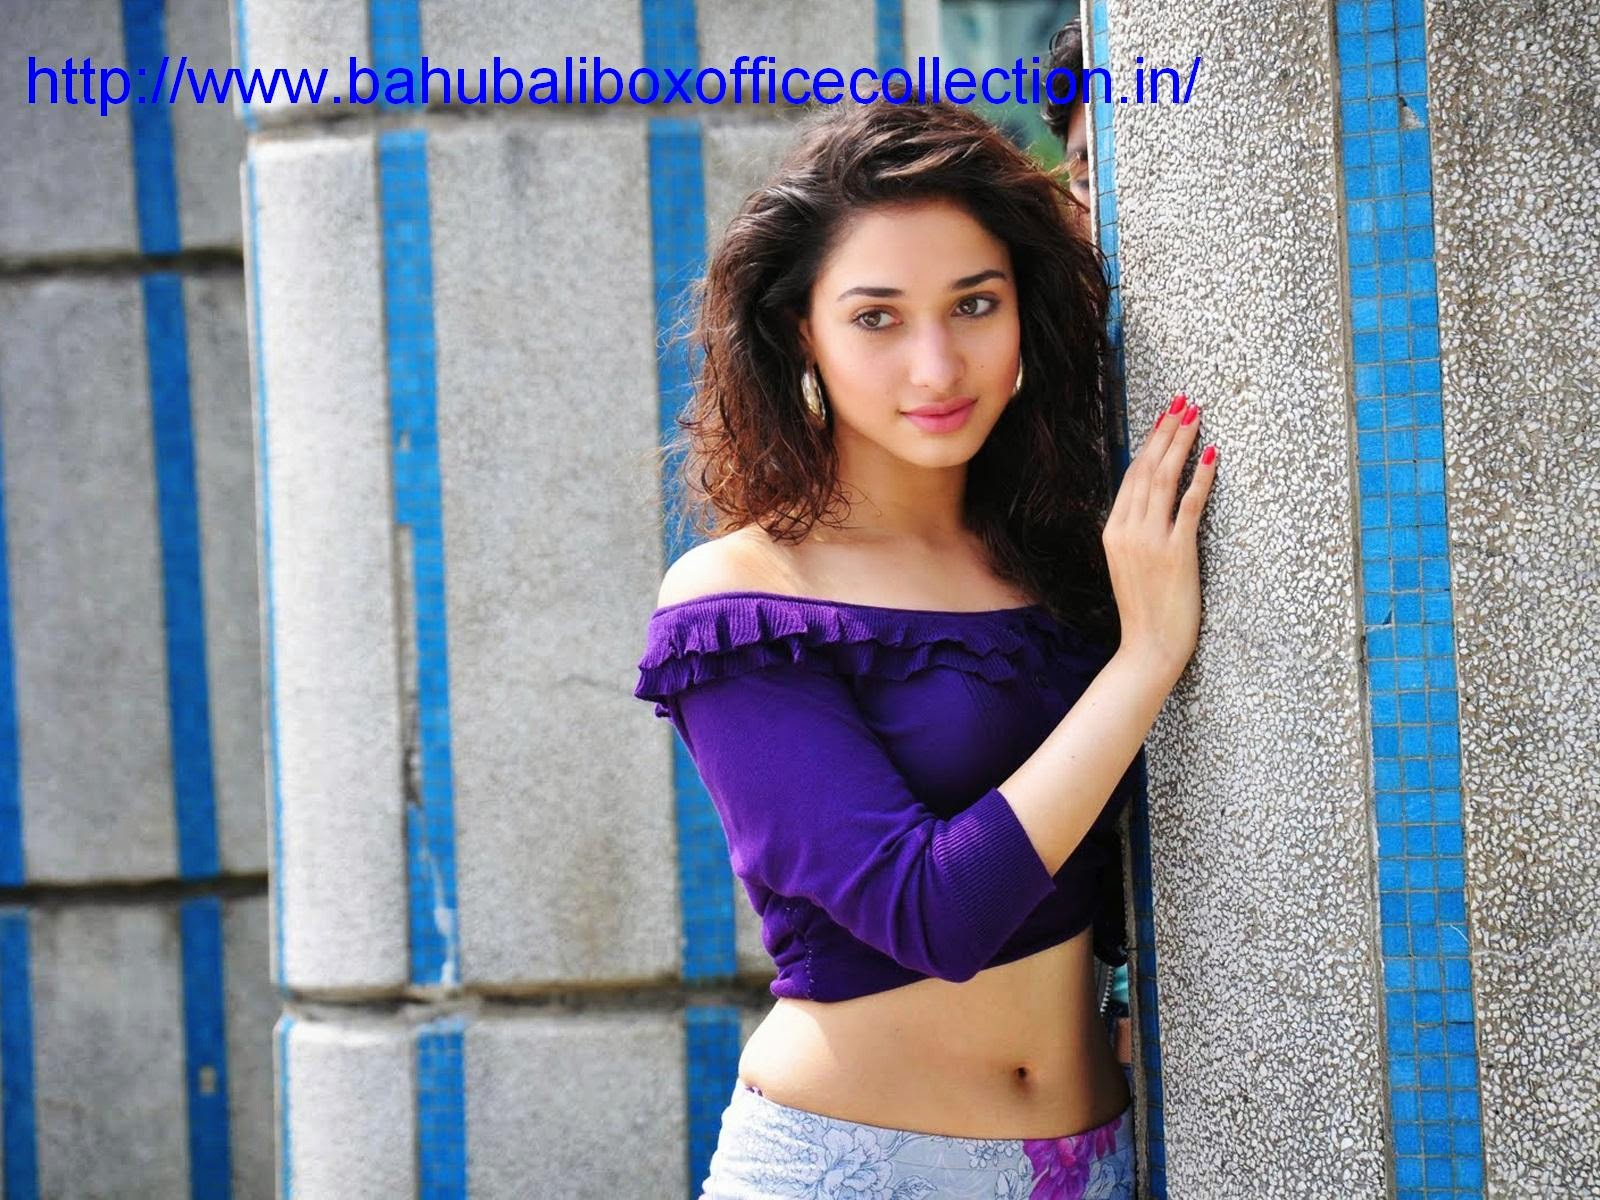 actress tamanna new stunning gallery images ~ bahubali box office